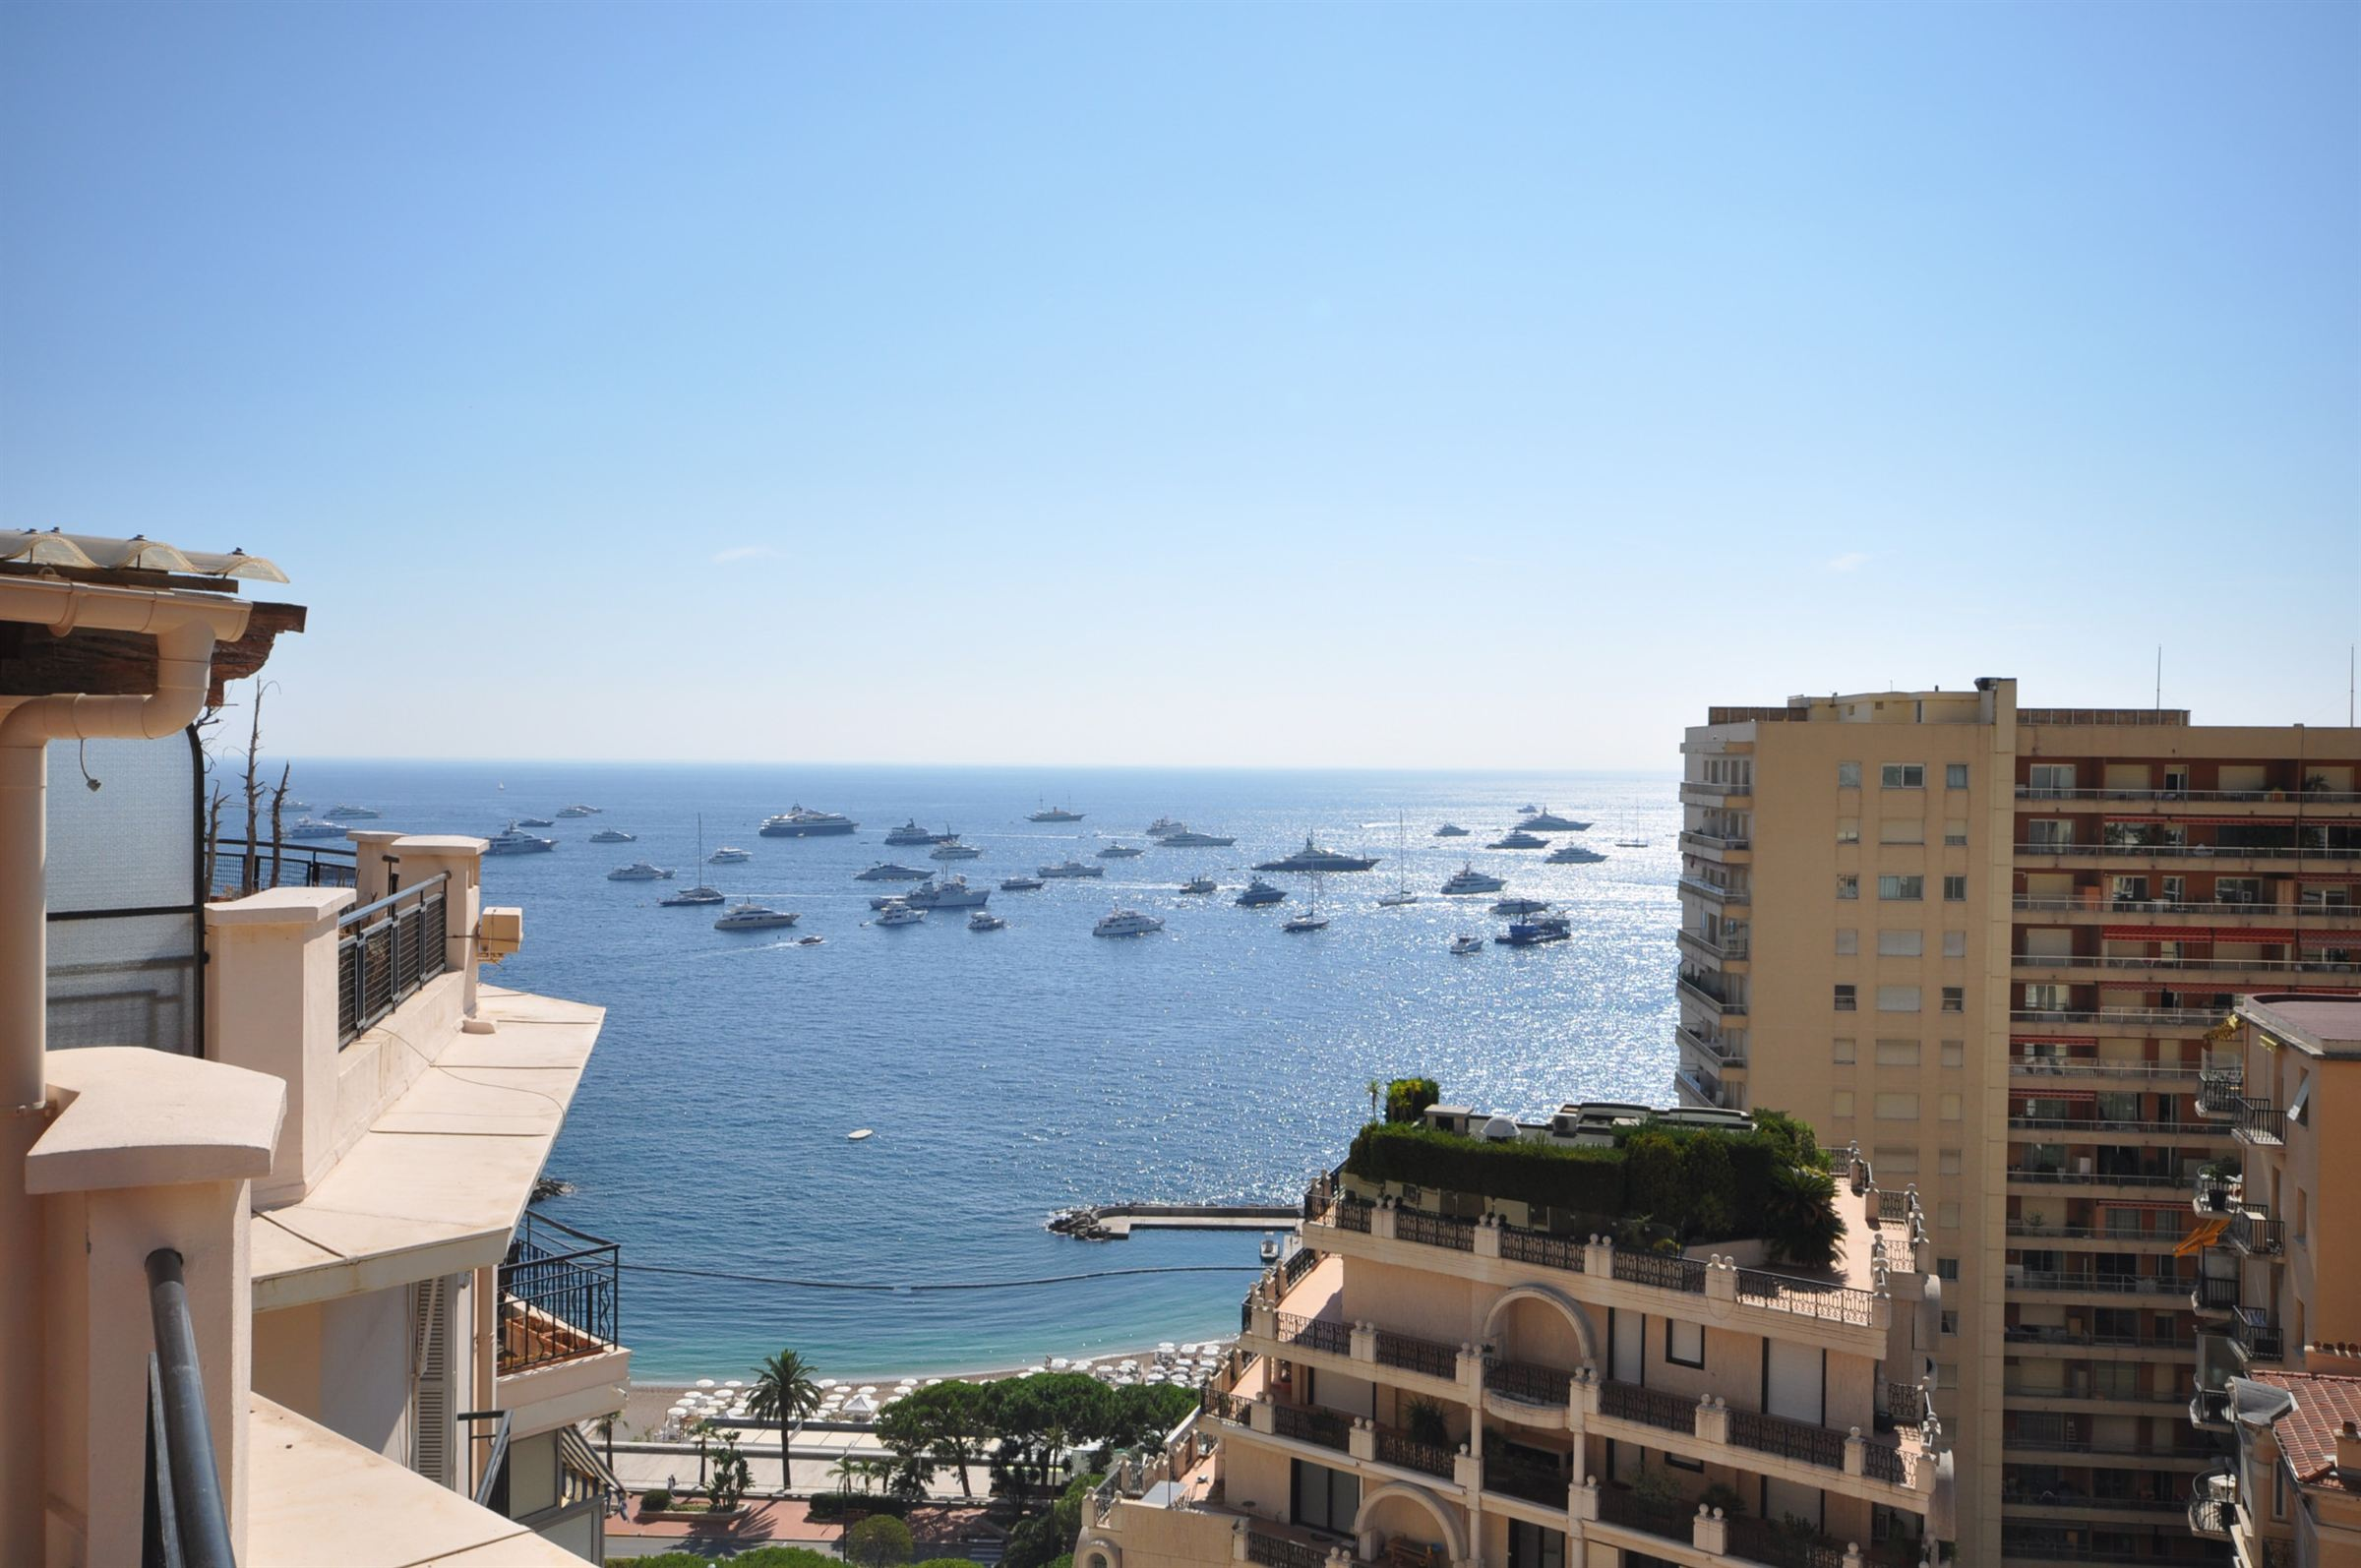 Duplex for Sale at Renovated Duplex roof for sale - Superb sea views. Other Monaco, Other Areas In Monaco, 98000 Monaco